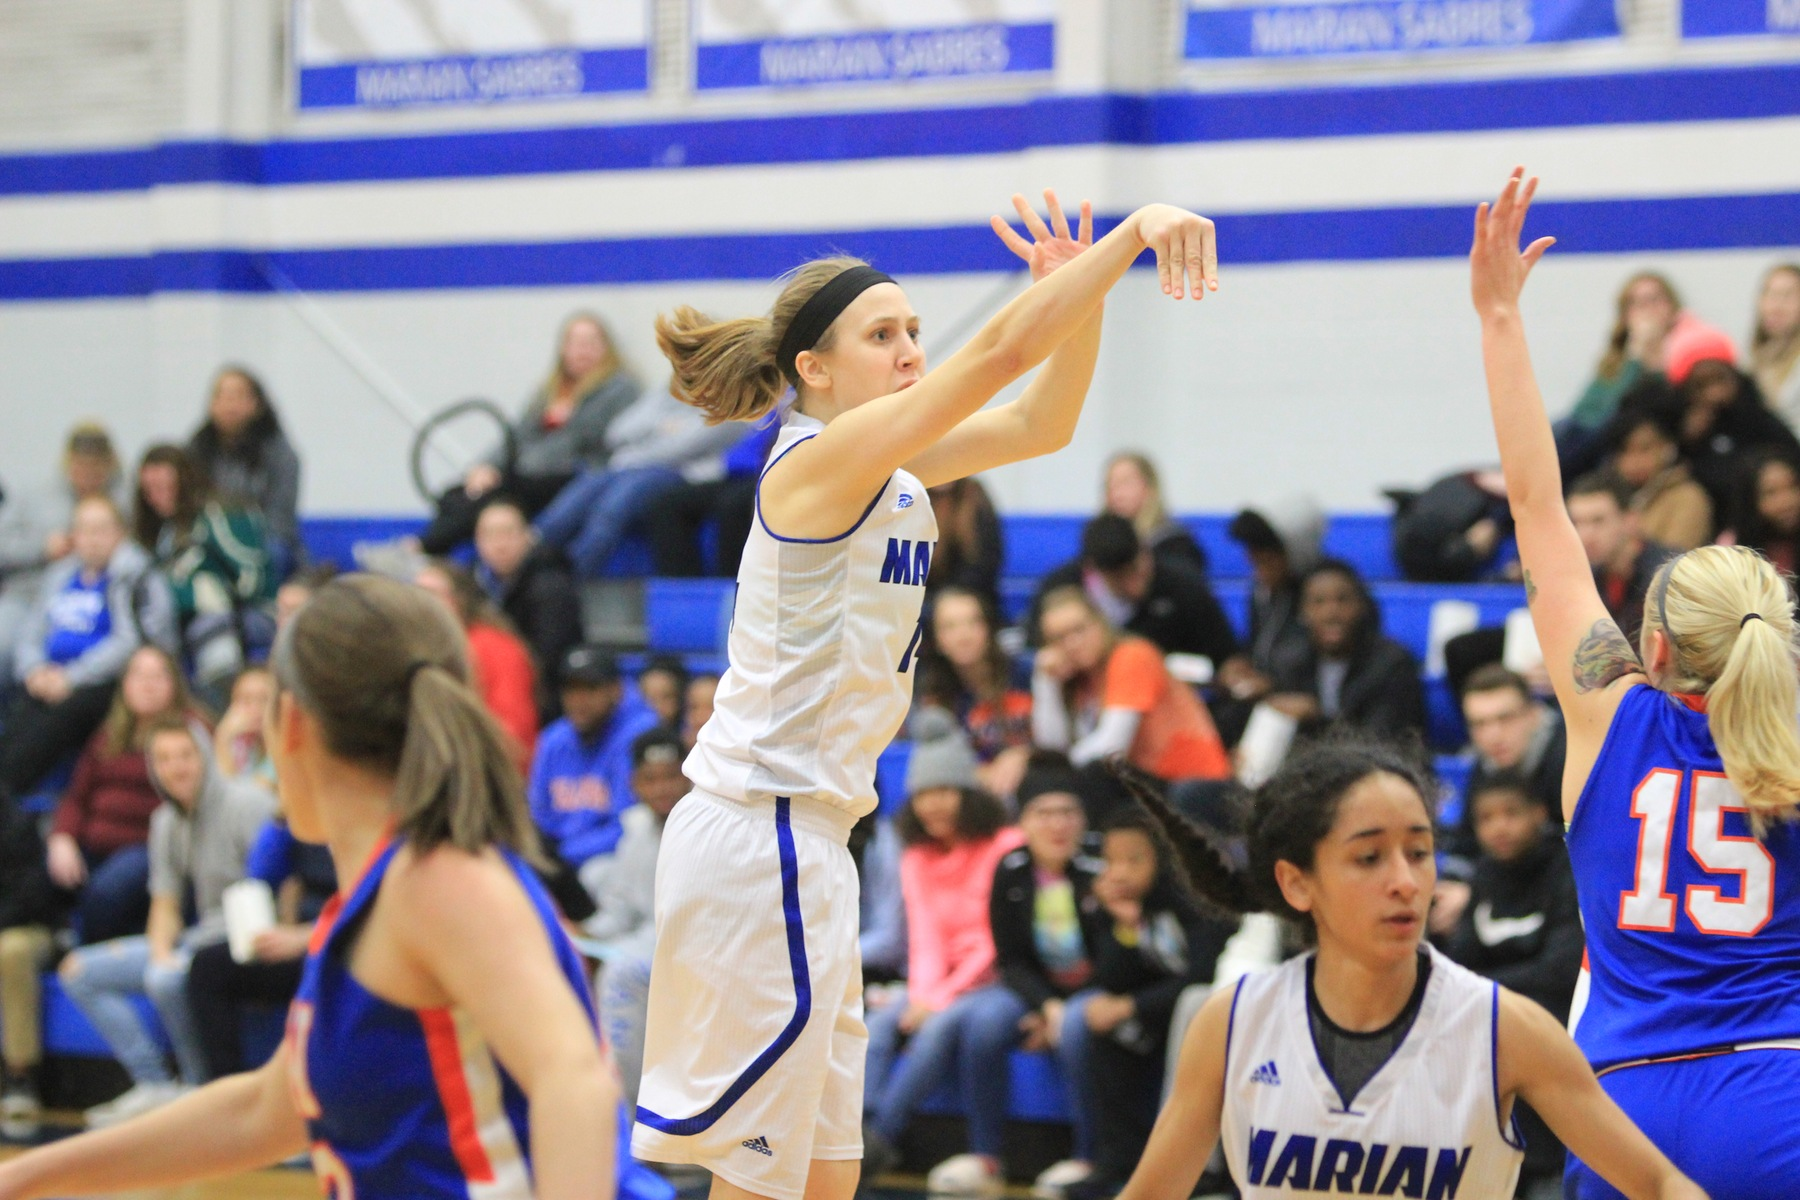 Tough third quarter sinks Marian women's basketball at Edgewood